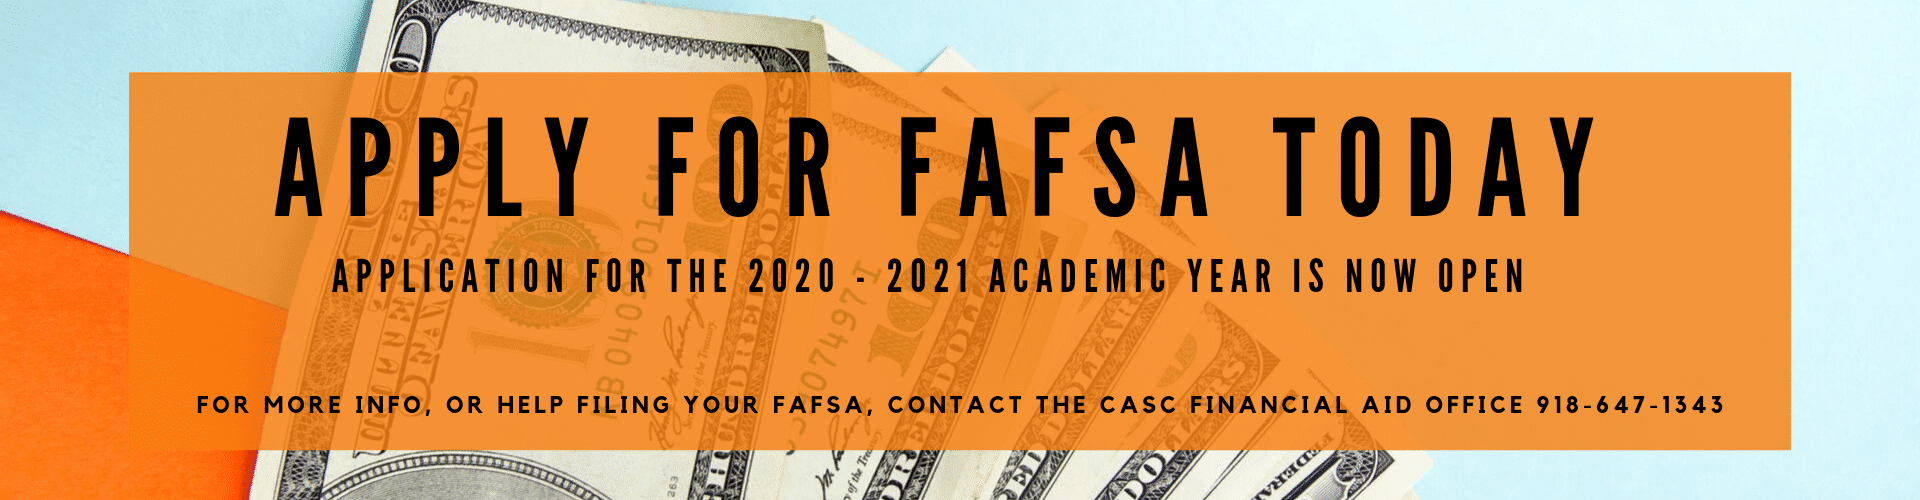 APPLICATION FOR THE 2020 - 2021 ACADEMIC YEAR IS NOW OPEN